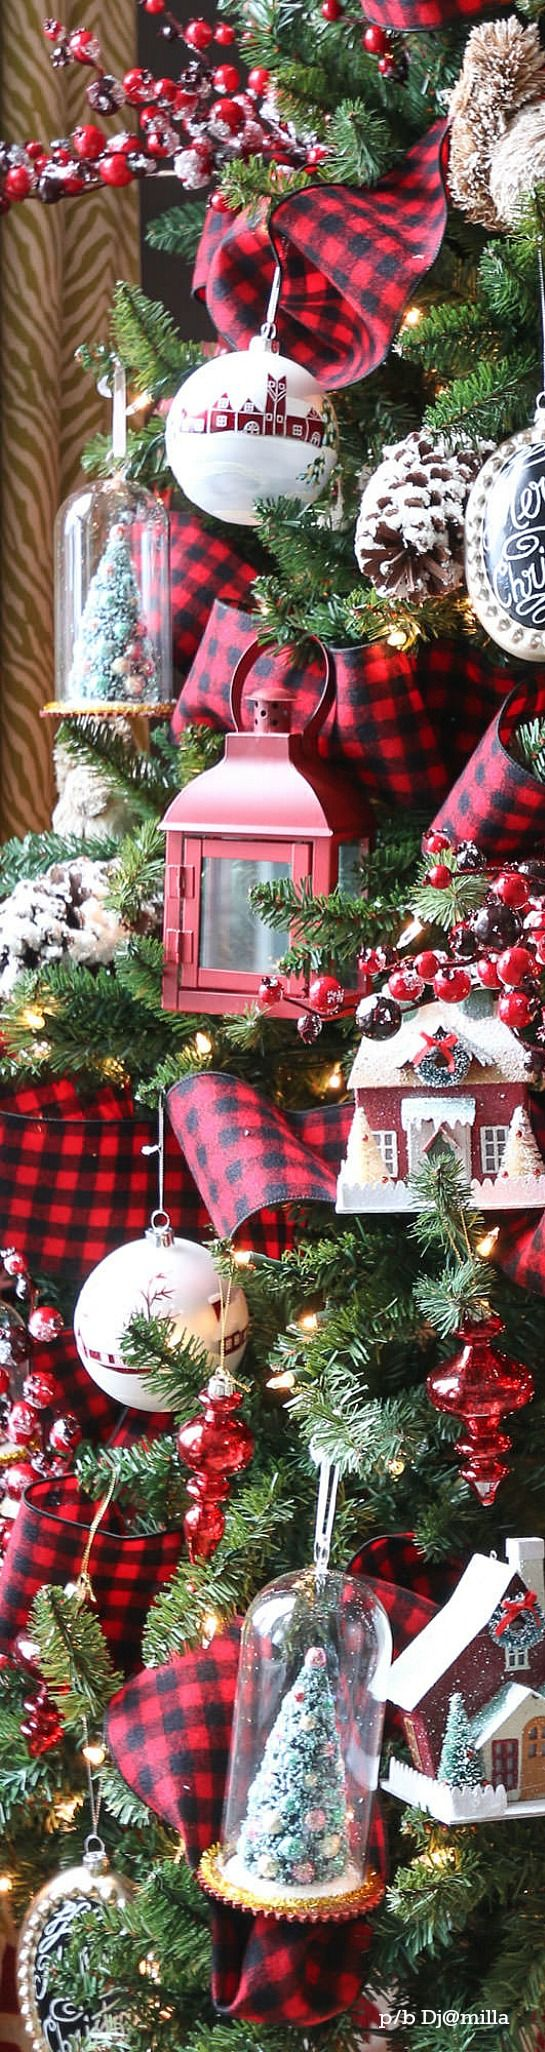 Why is holly a traditional christmas decoration - Holly S Christmas Open House